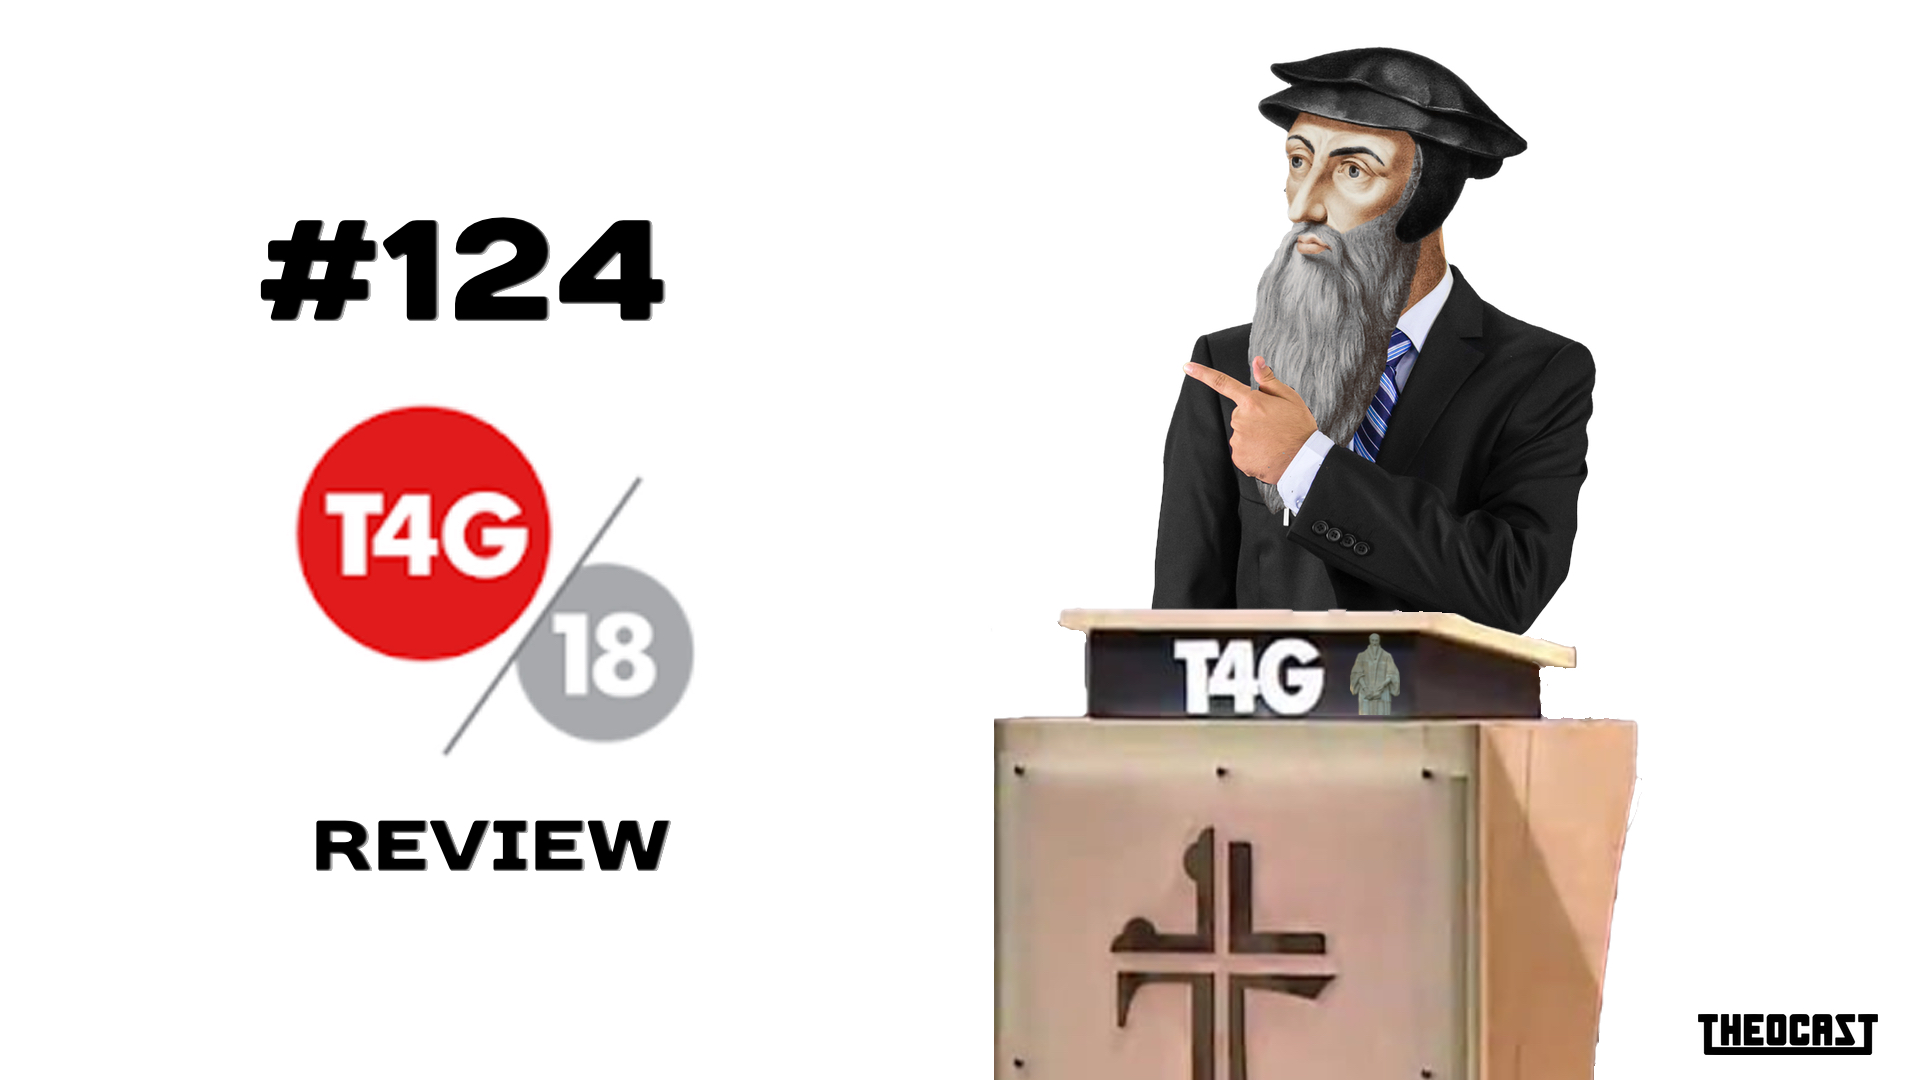 #124 T4G Review